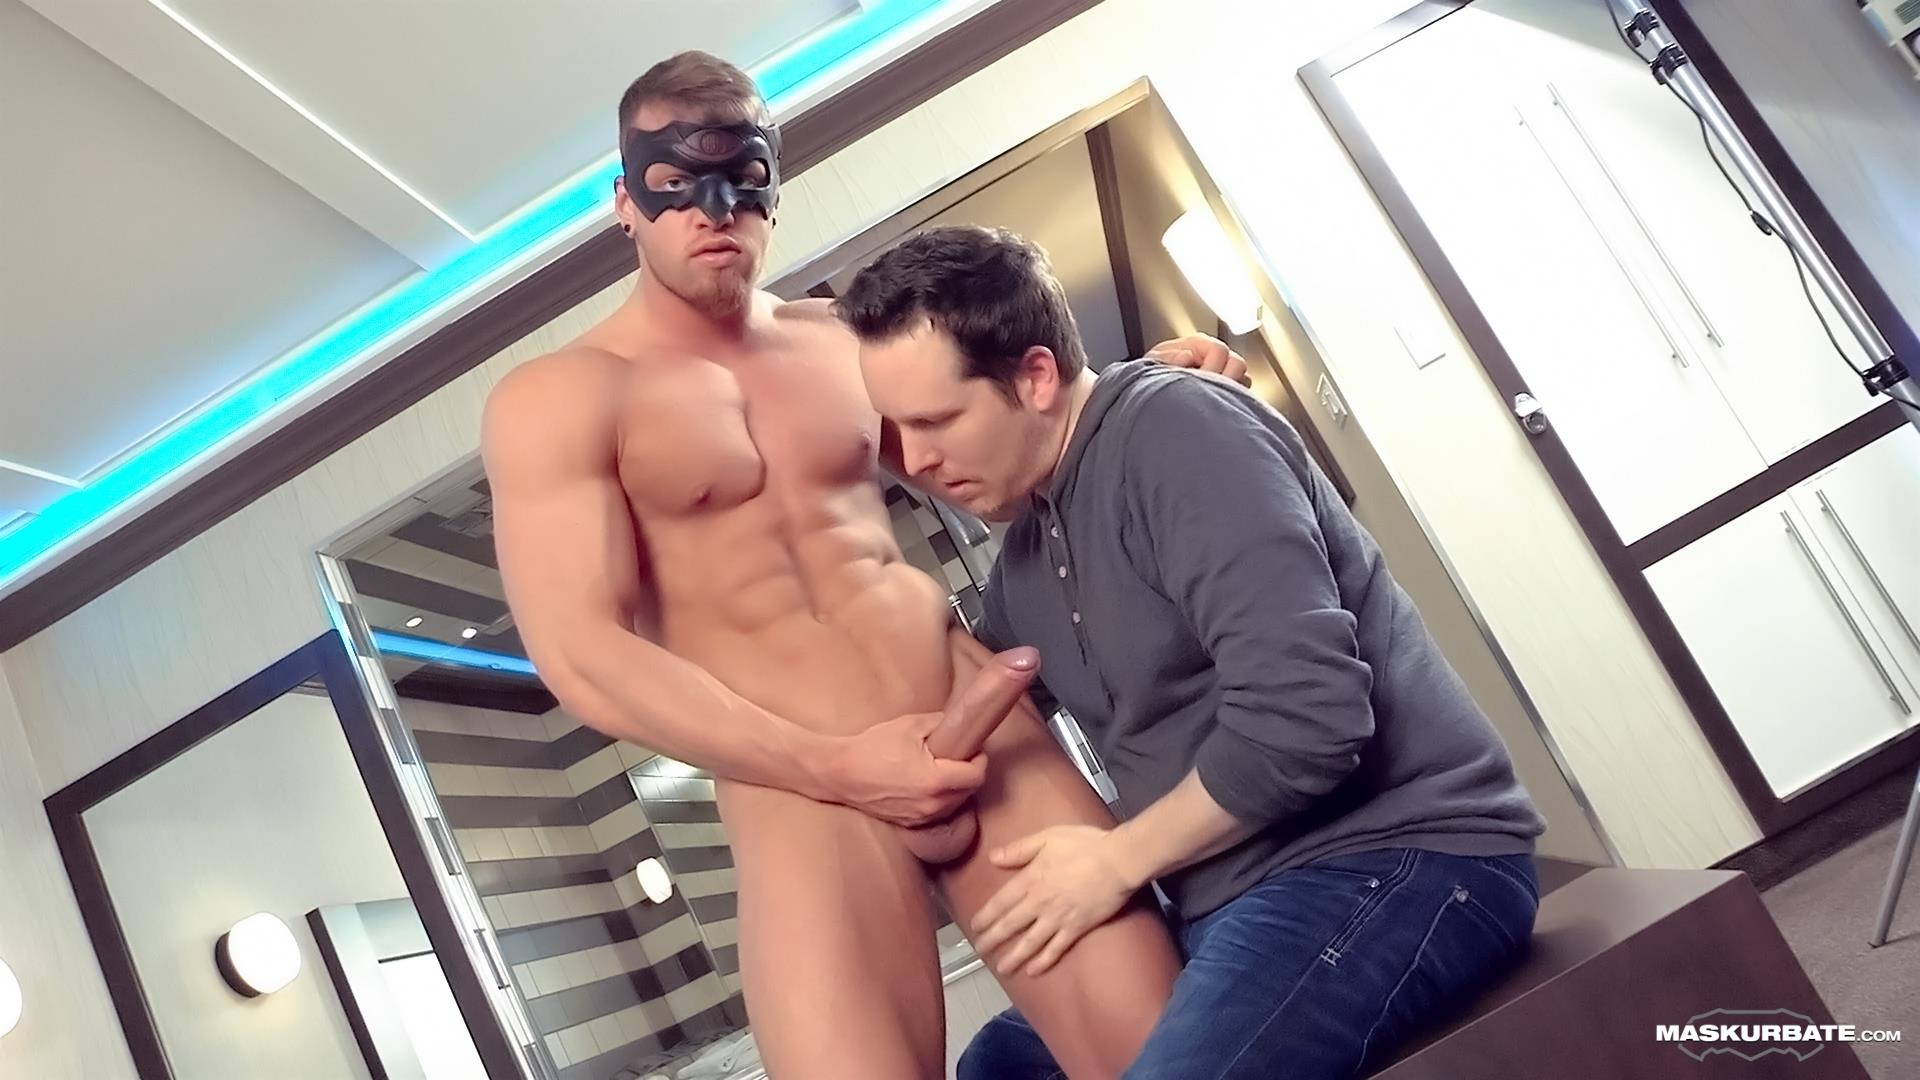 Maskurbate-Pascal-and-Brad-Straight-Muscle-Hunk-With-A-Big-Uncut-Cock-Jerking-His-Cock-Amateur-Gay-Porn-07 Worshipping A Straight Muscle Hunk With A Big Uncut Cock